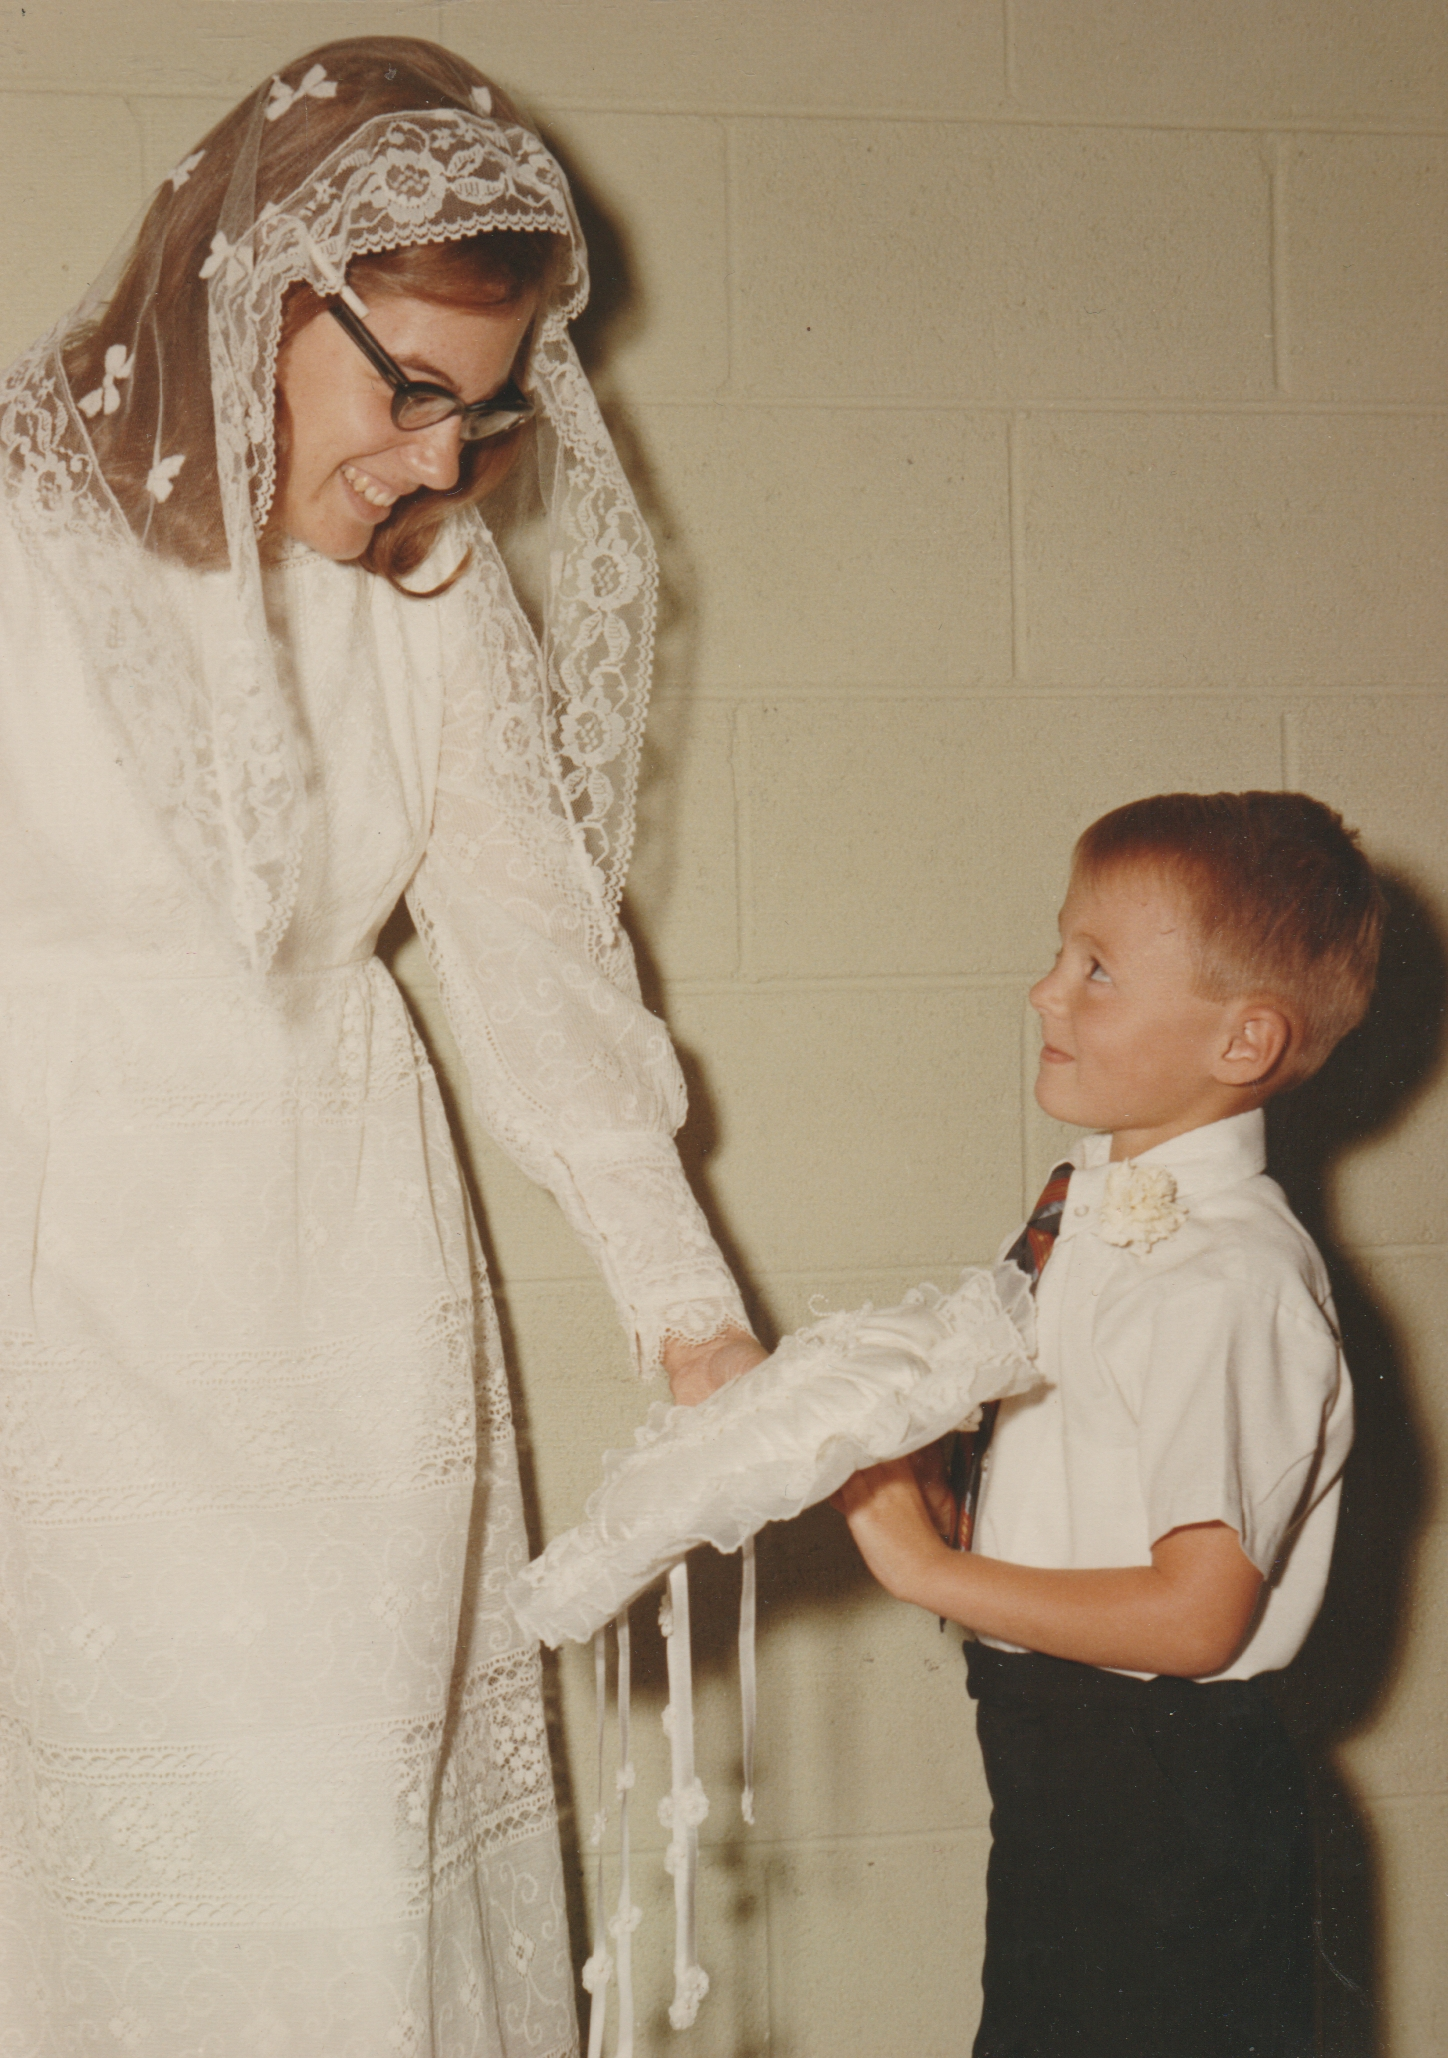 1971-09-04 - Saturday - Wedding Photos-09.jpg